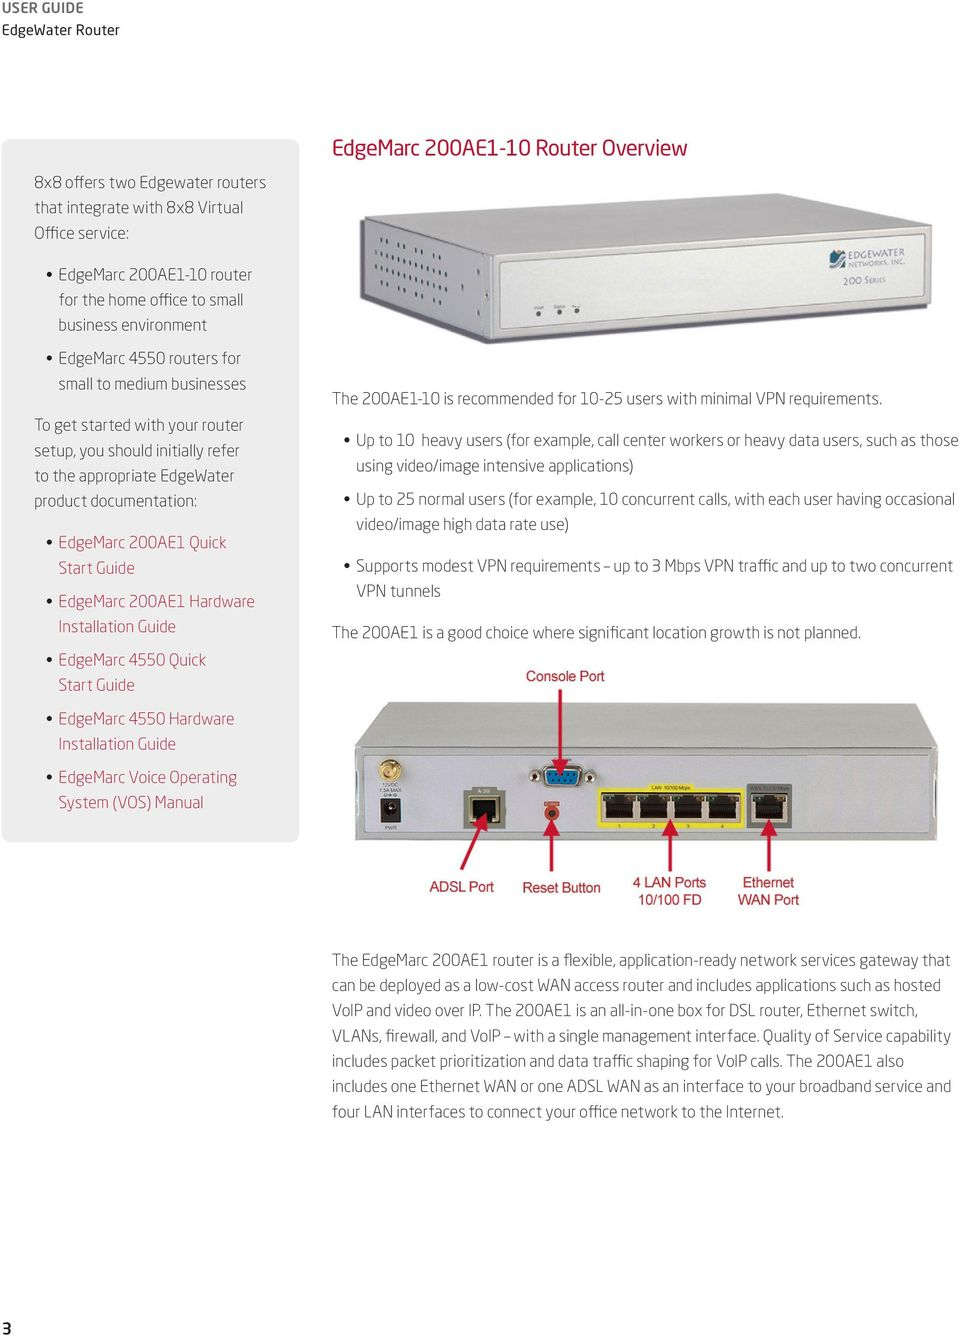 Guide EdgeMarc 200AE1 Hardware Installation Guide EdgeMarc 4550 Quick Start Guide The 200AE1-10 is recommended for 10-25 users with minimal VPN requirements.